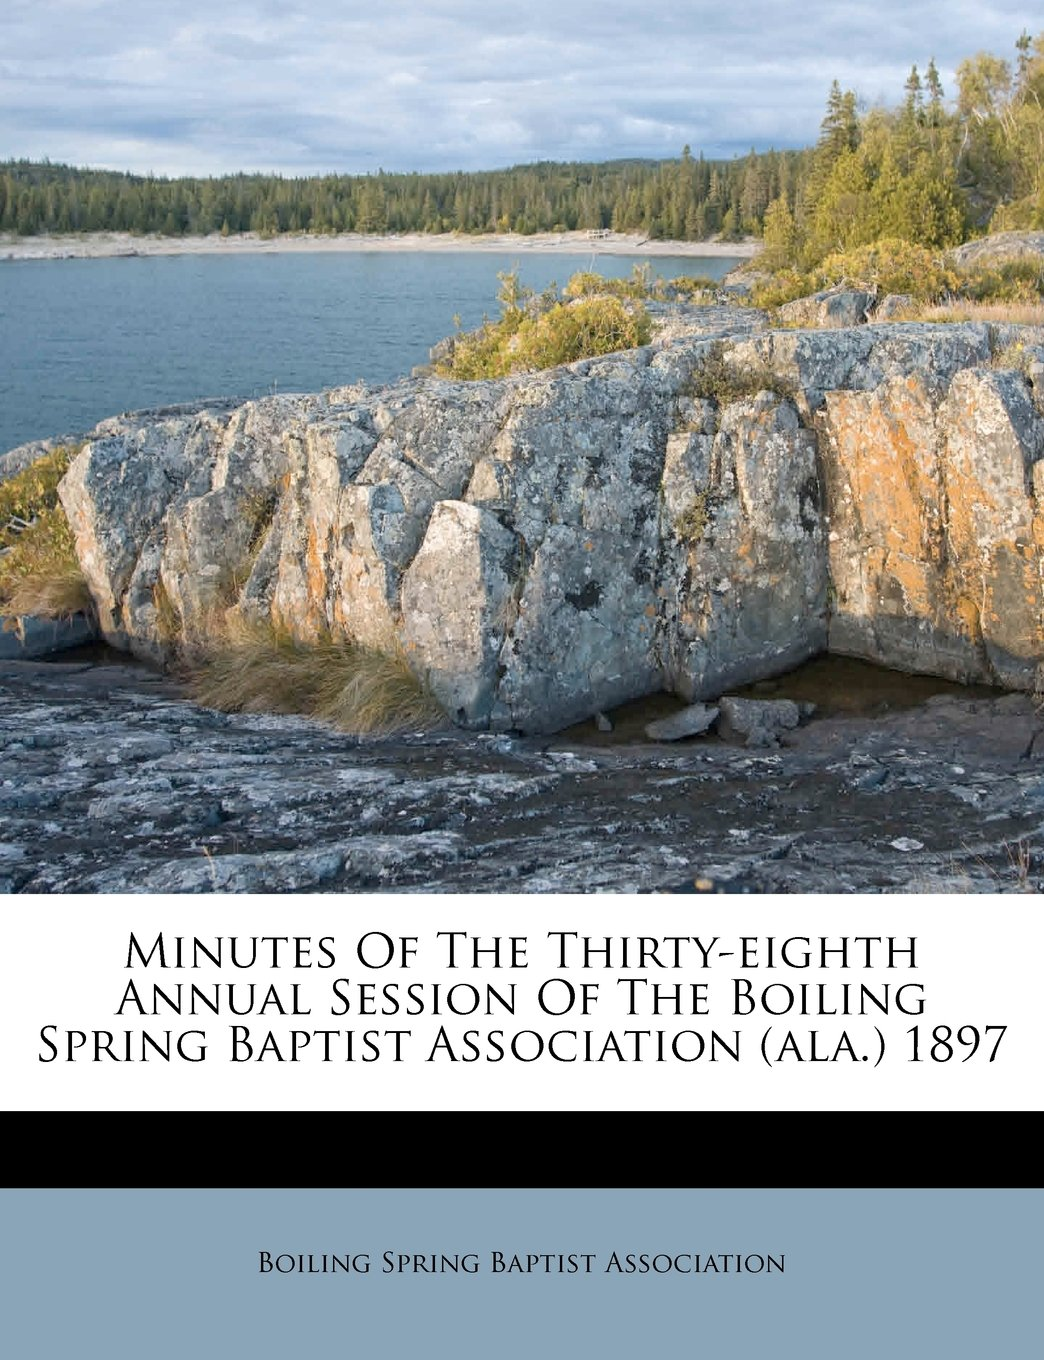 Minutes Of The Thirty-eighth Annual Session Of The Boiling Spring Baptist Association (ala.) 1897 PDF